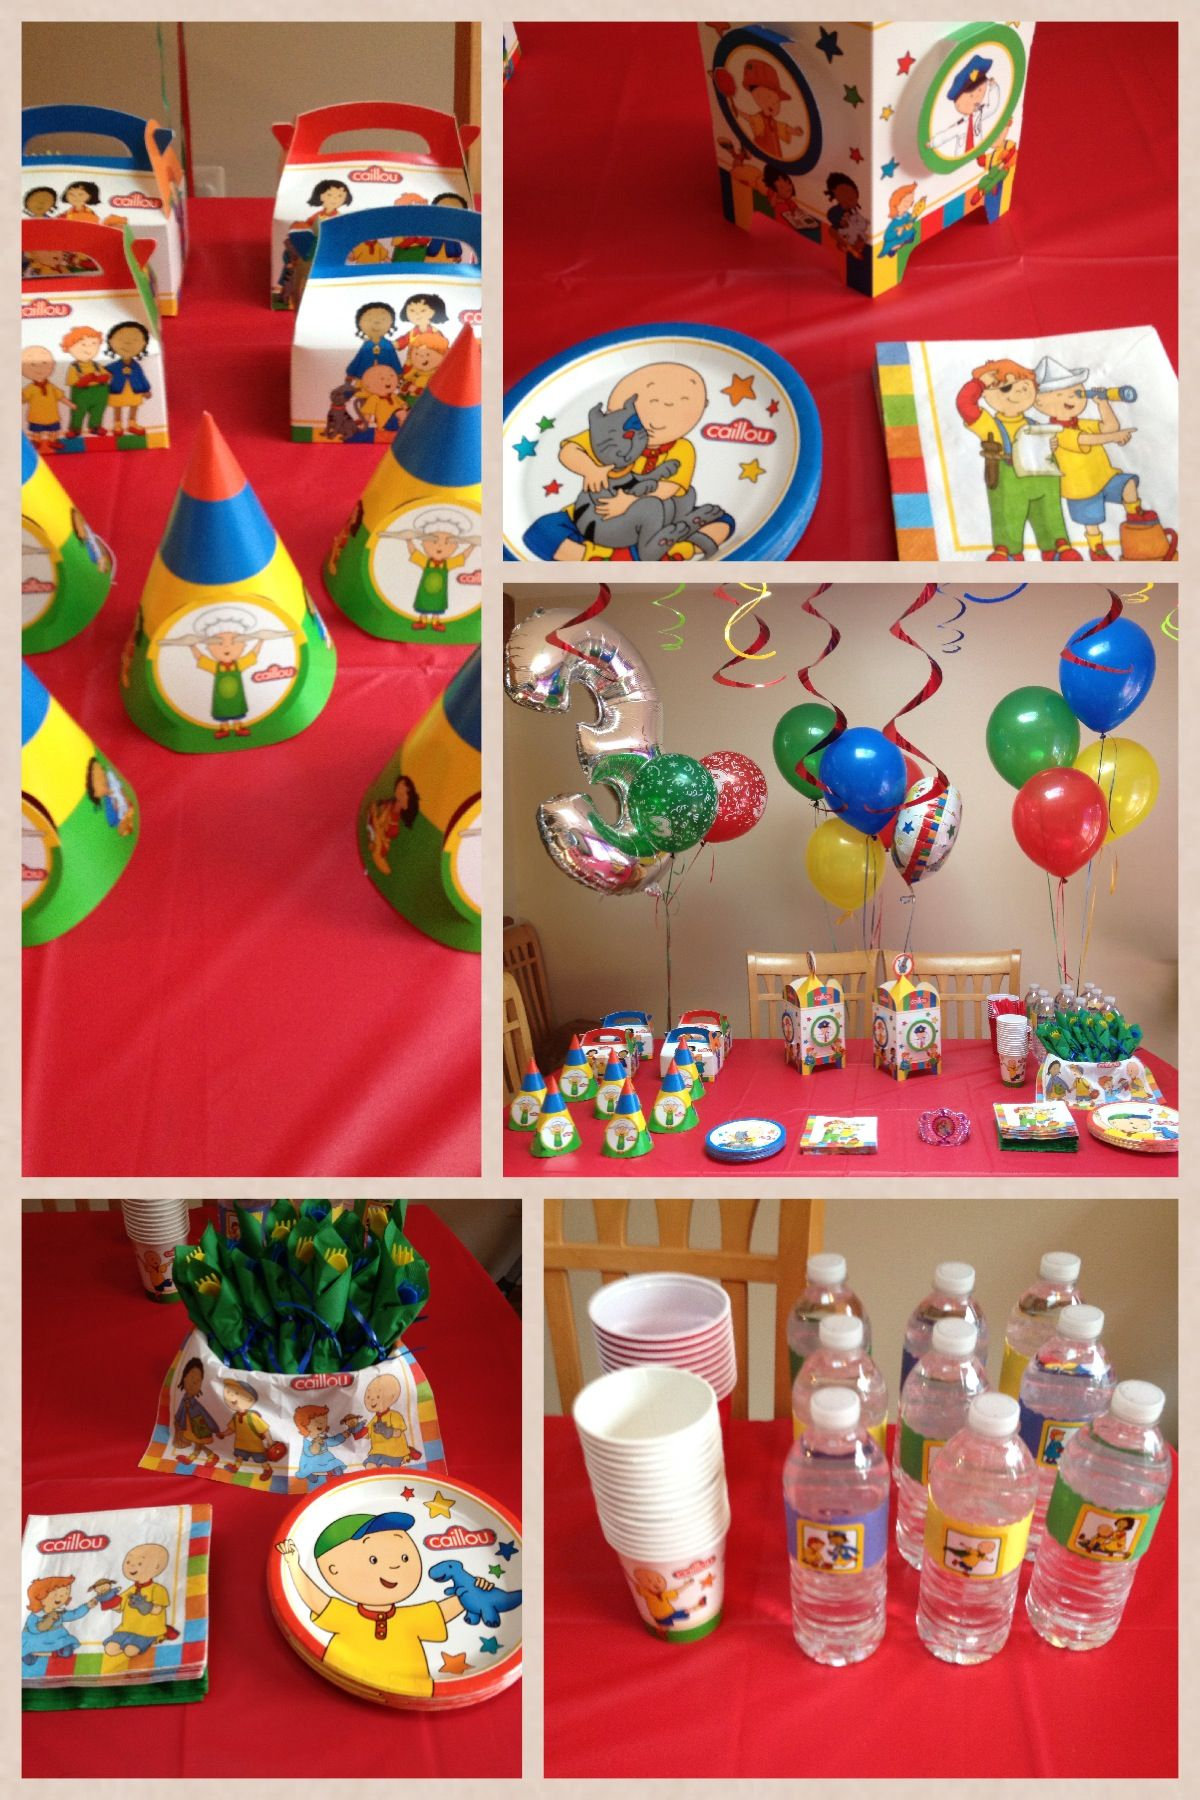 Love these Caillou party decorations Brandons second birthday